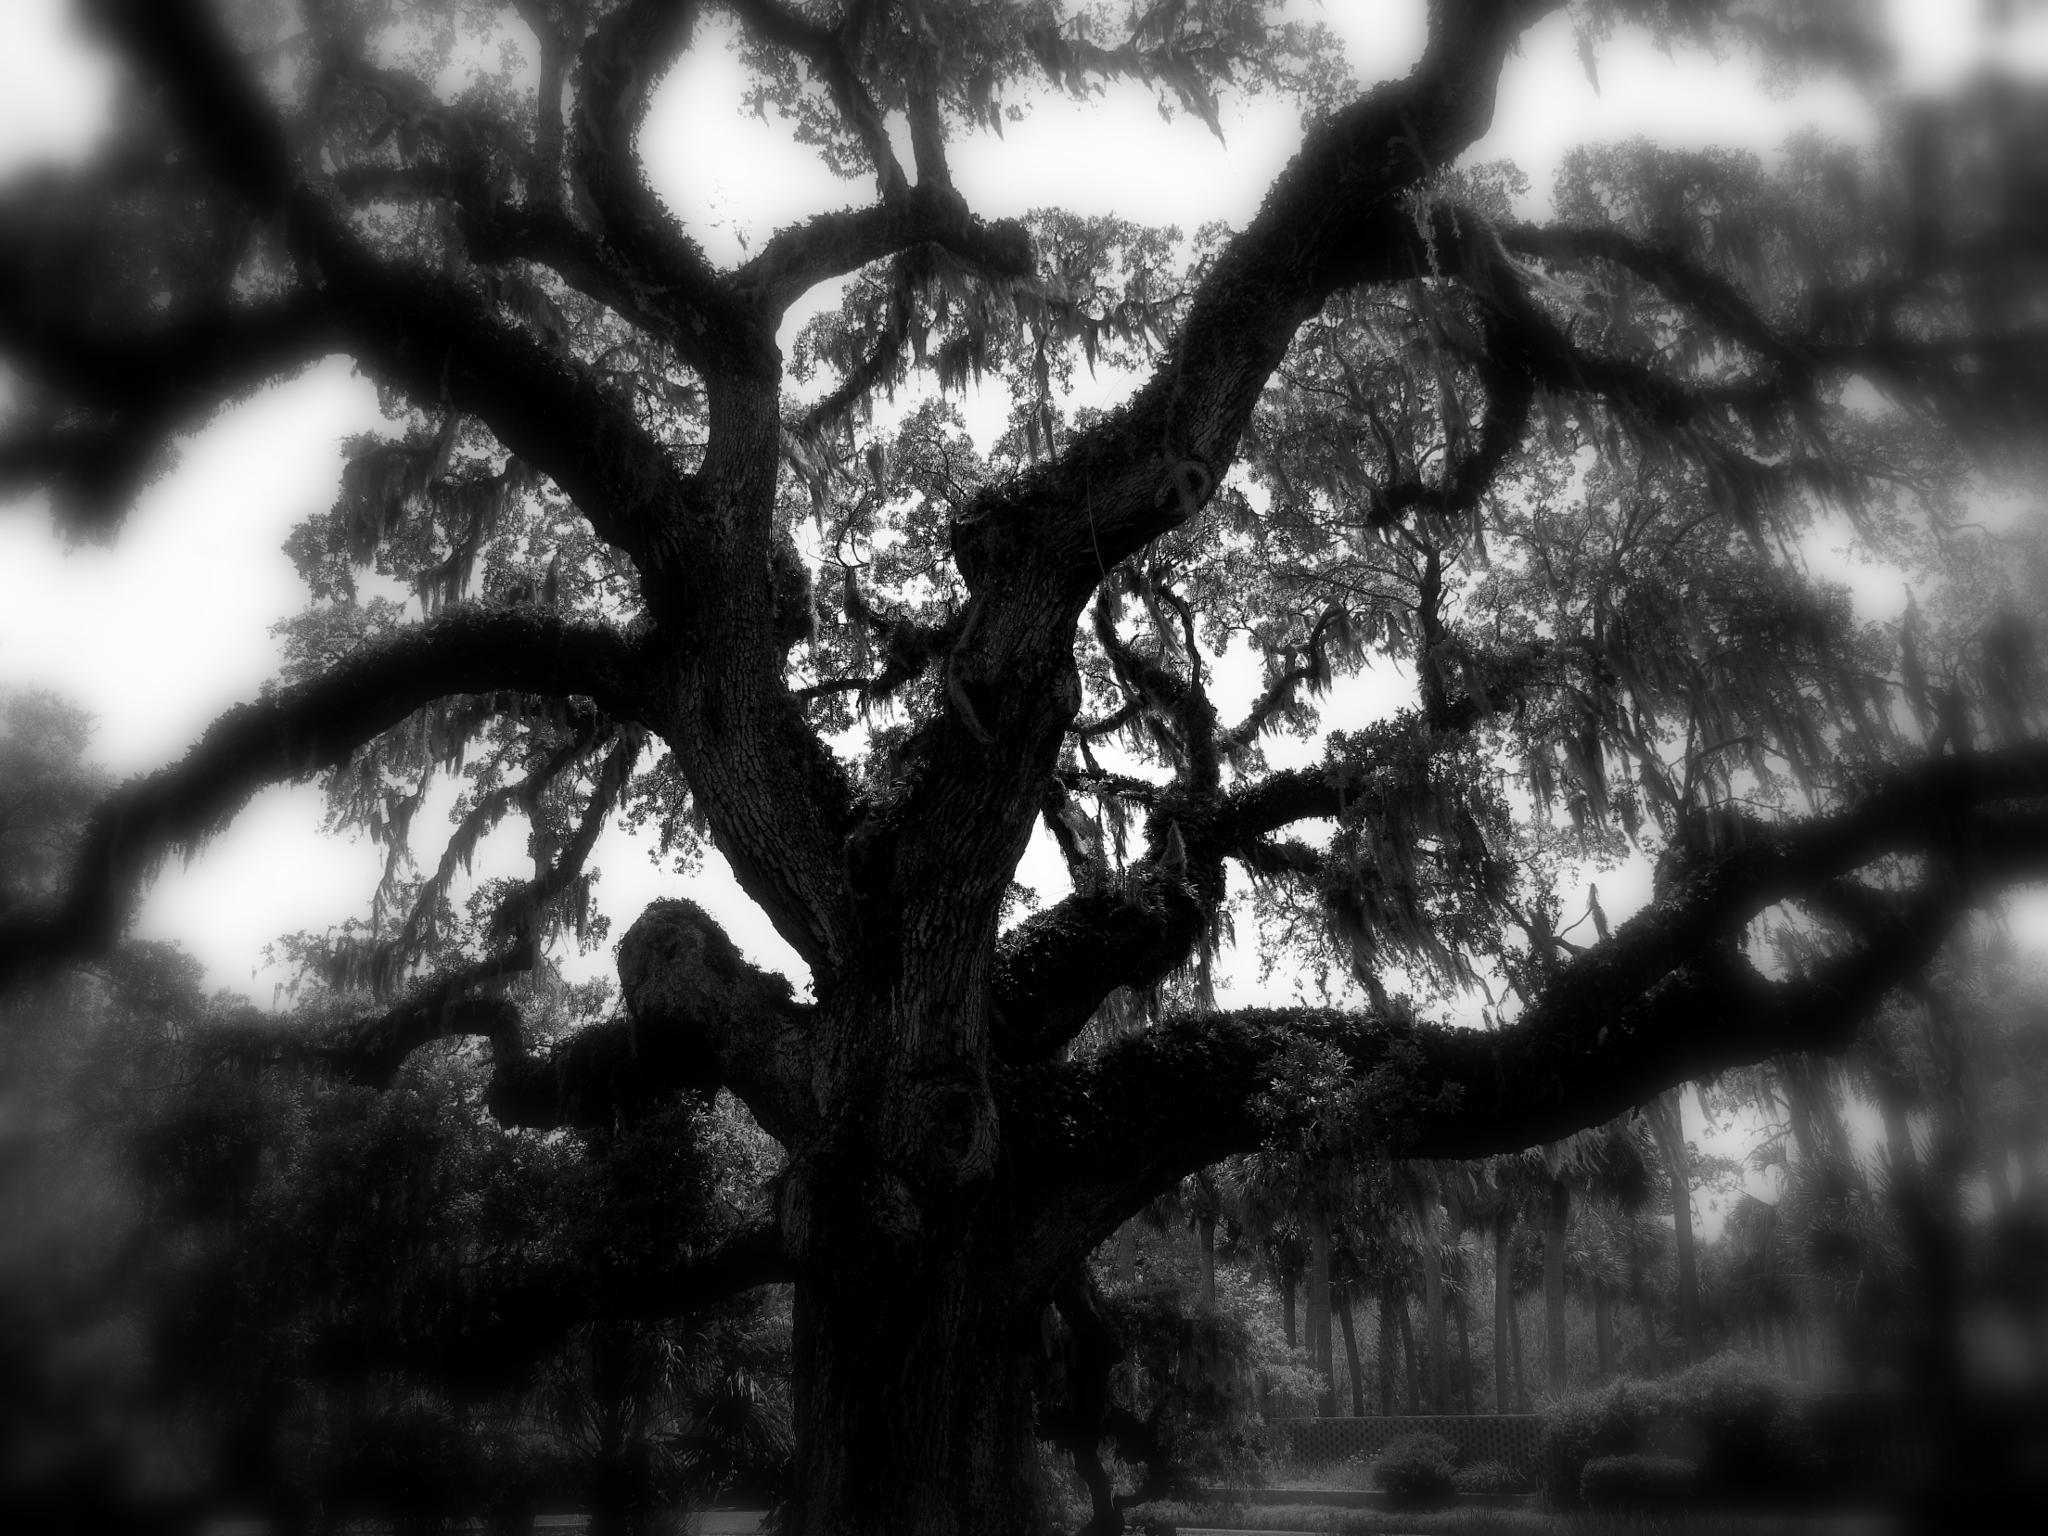 500 years old live oak by TatyanaNagel